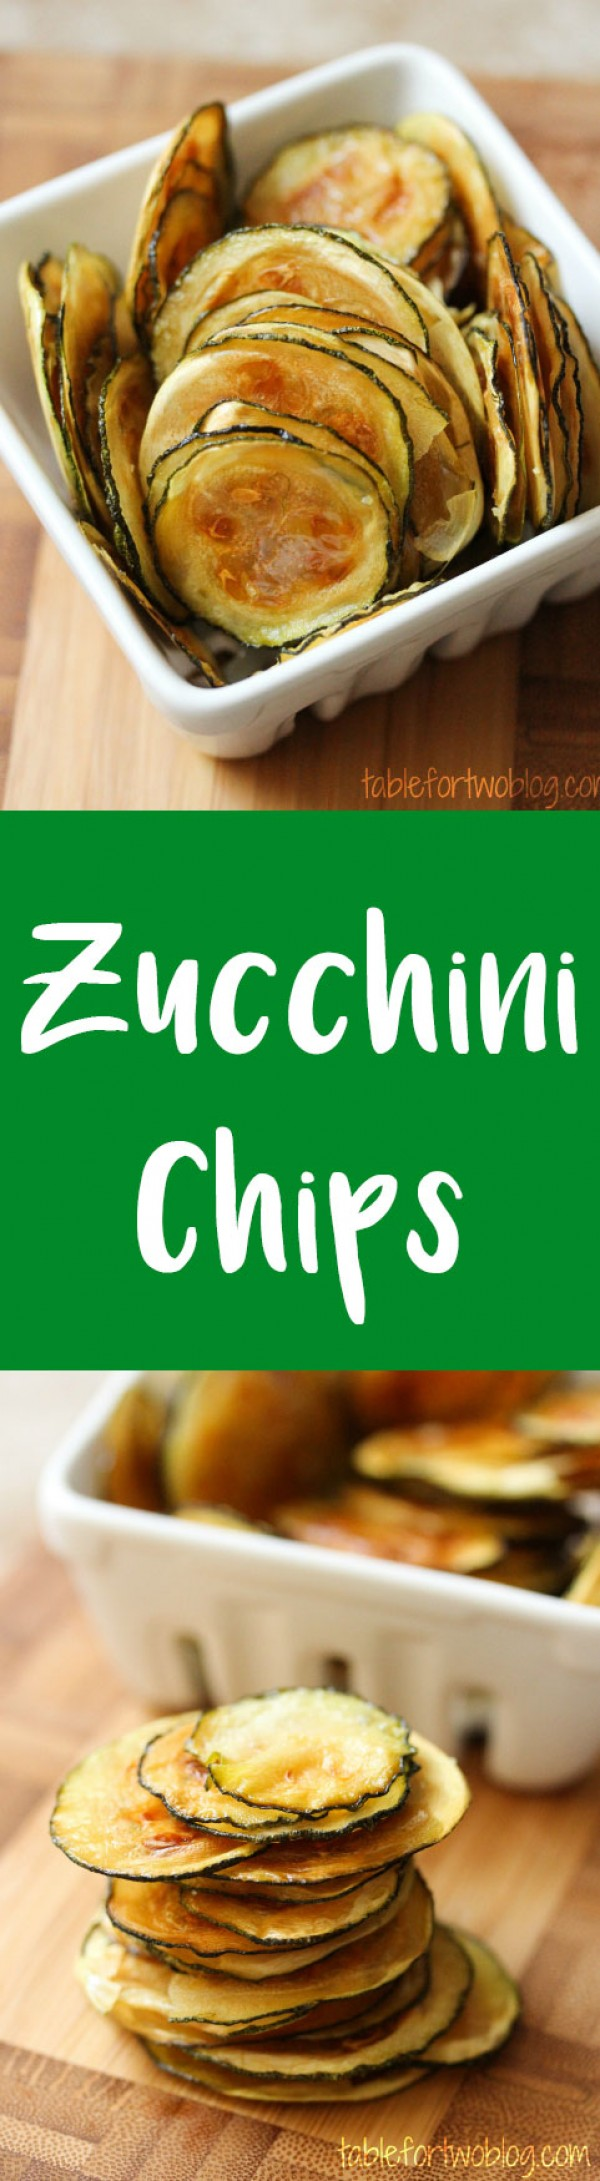 Get the recipe Zucchini Chips @recipes_to_go